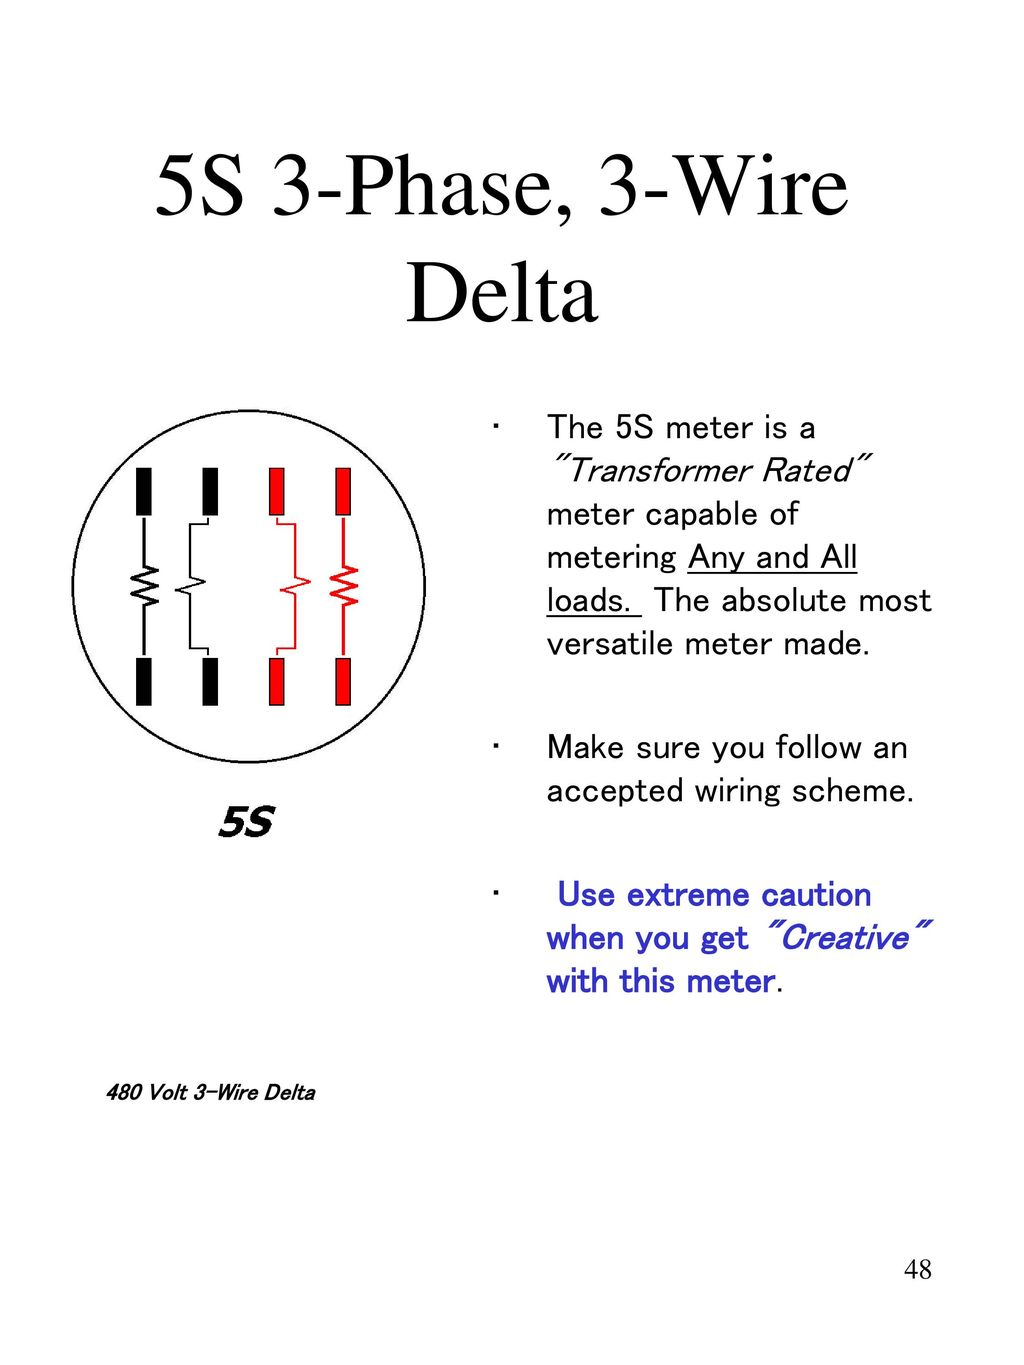 Metering In Todays World Ppt Download 480v 3 Phase Delta Transformer Wiring Diagram 5s Wire The Meter Is A Rated